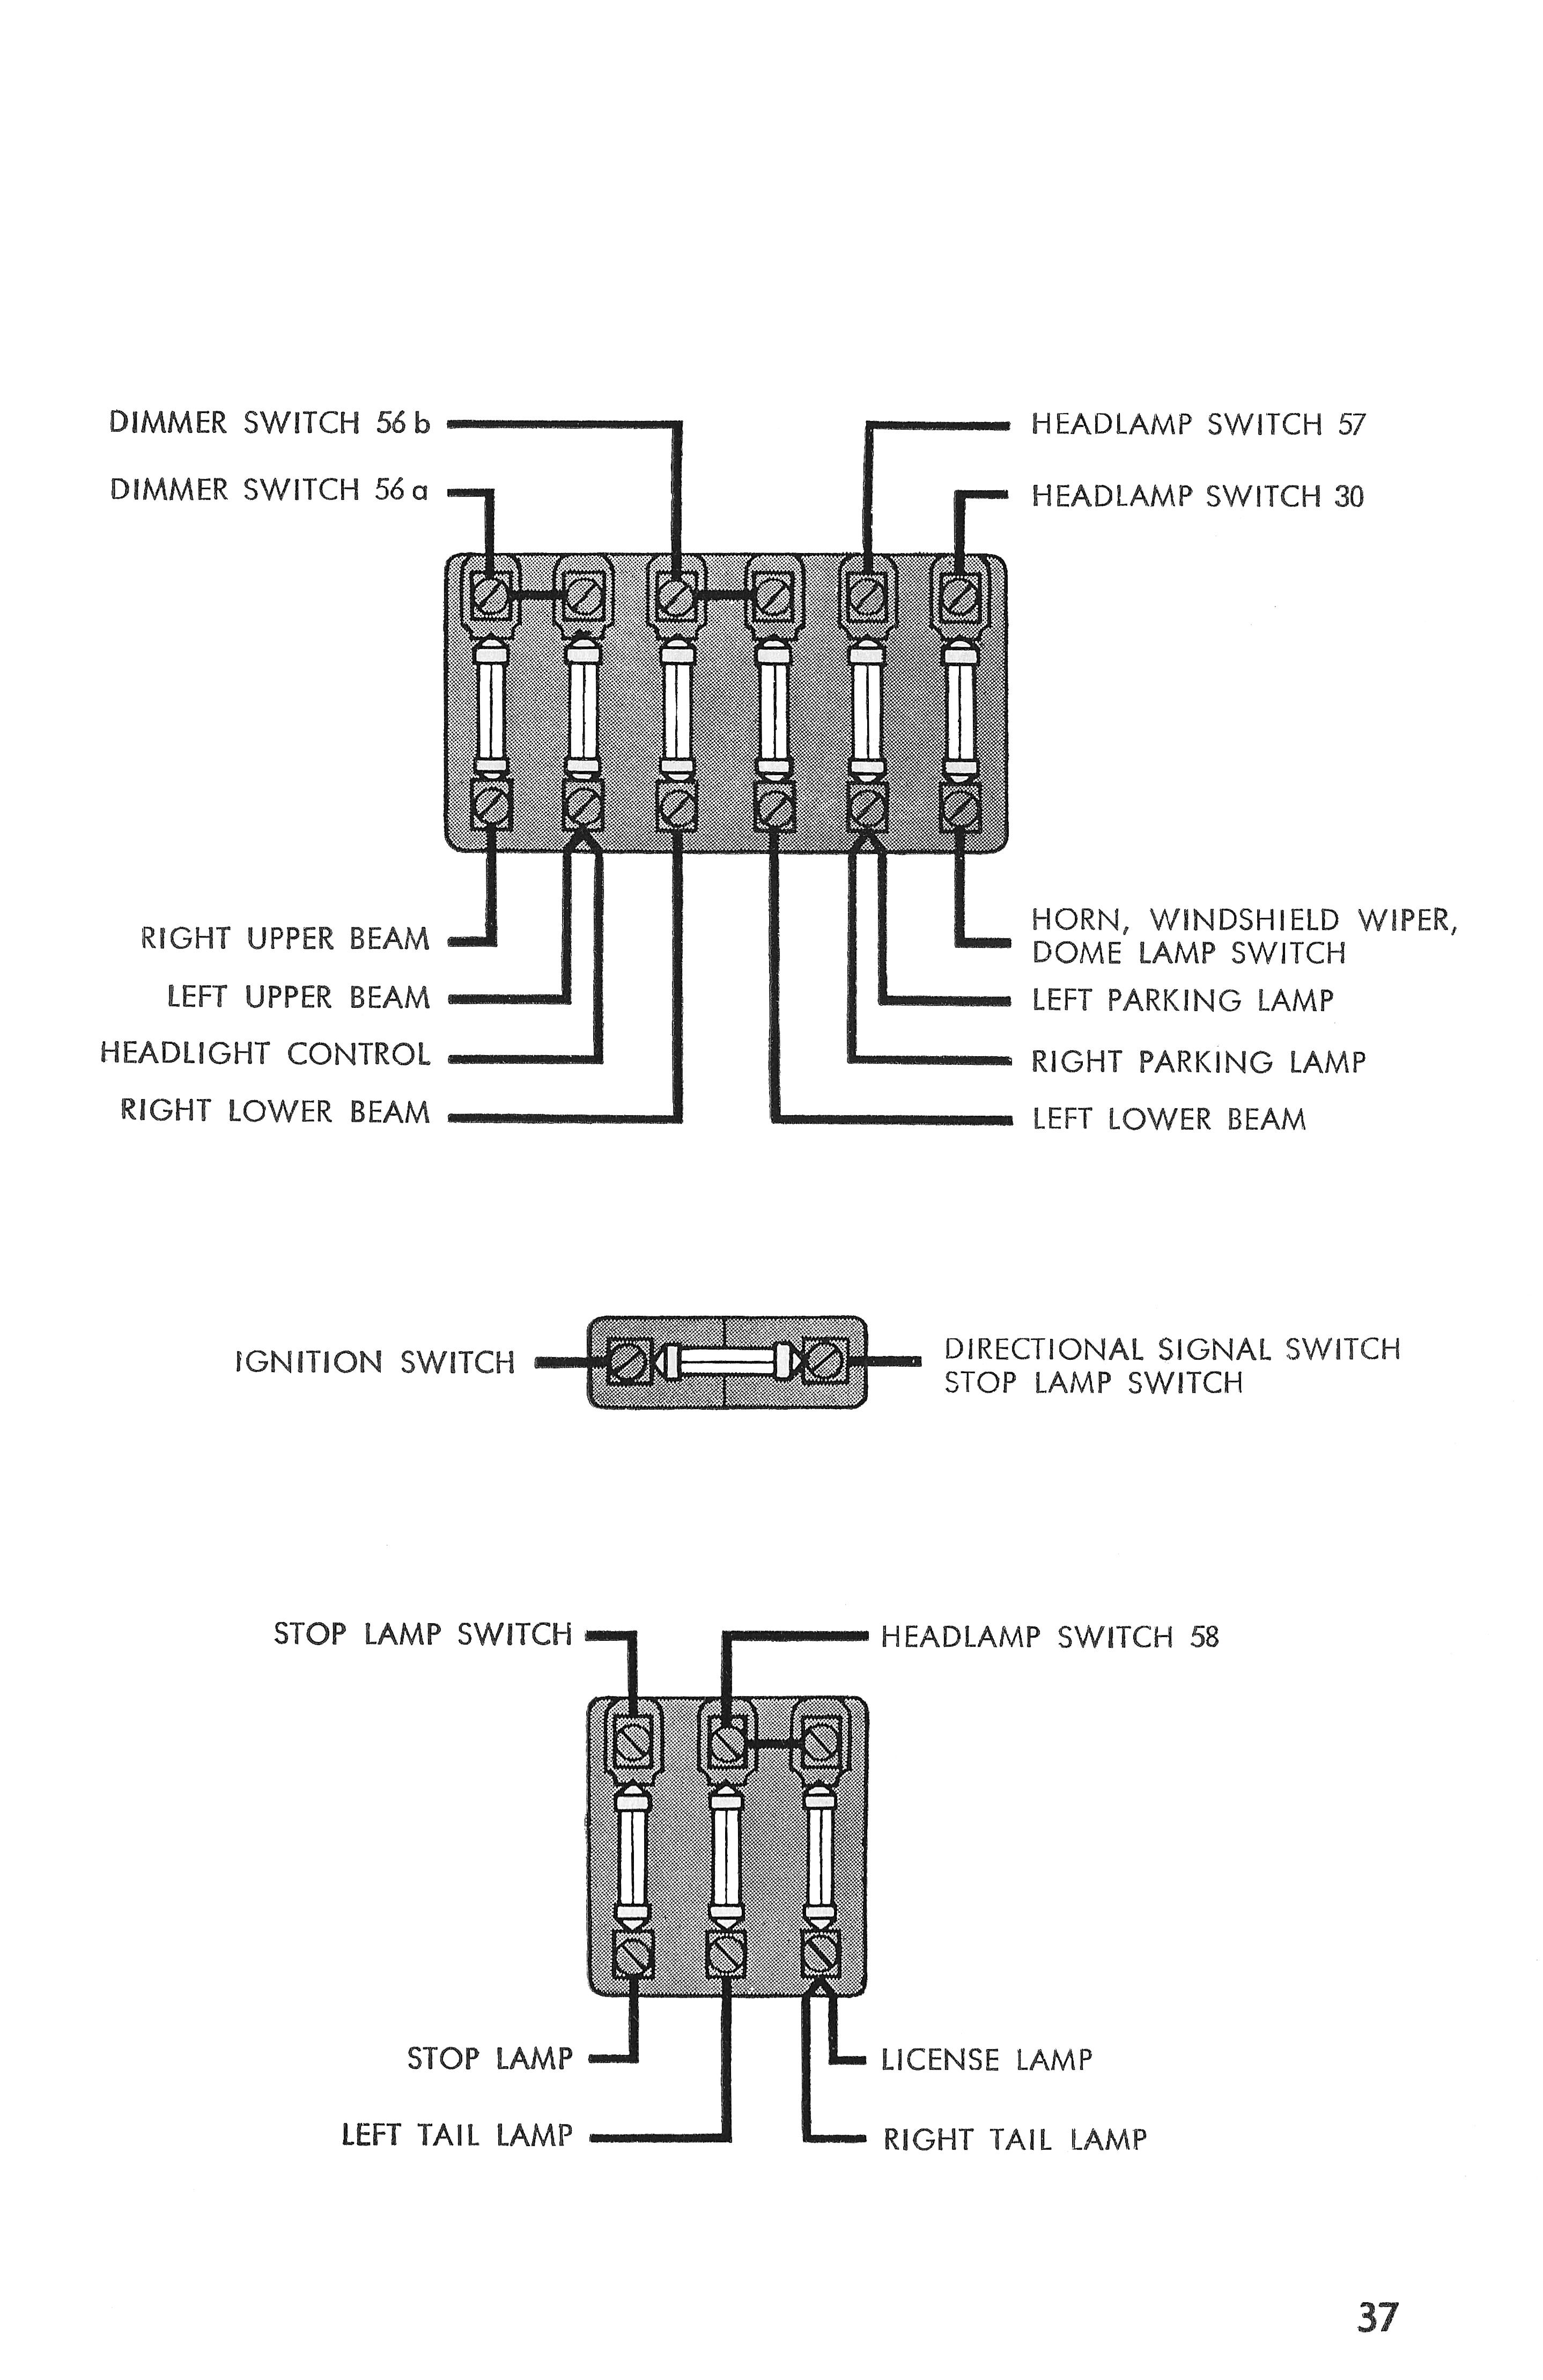 Image result for technical diagram Dimmer switch